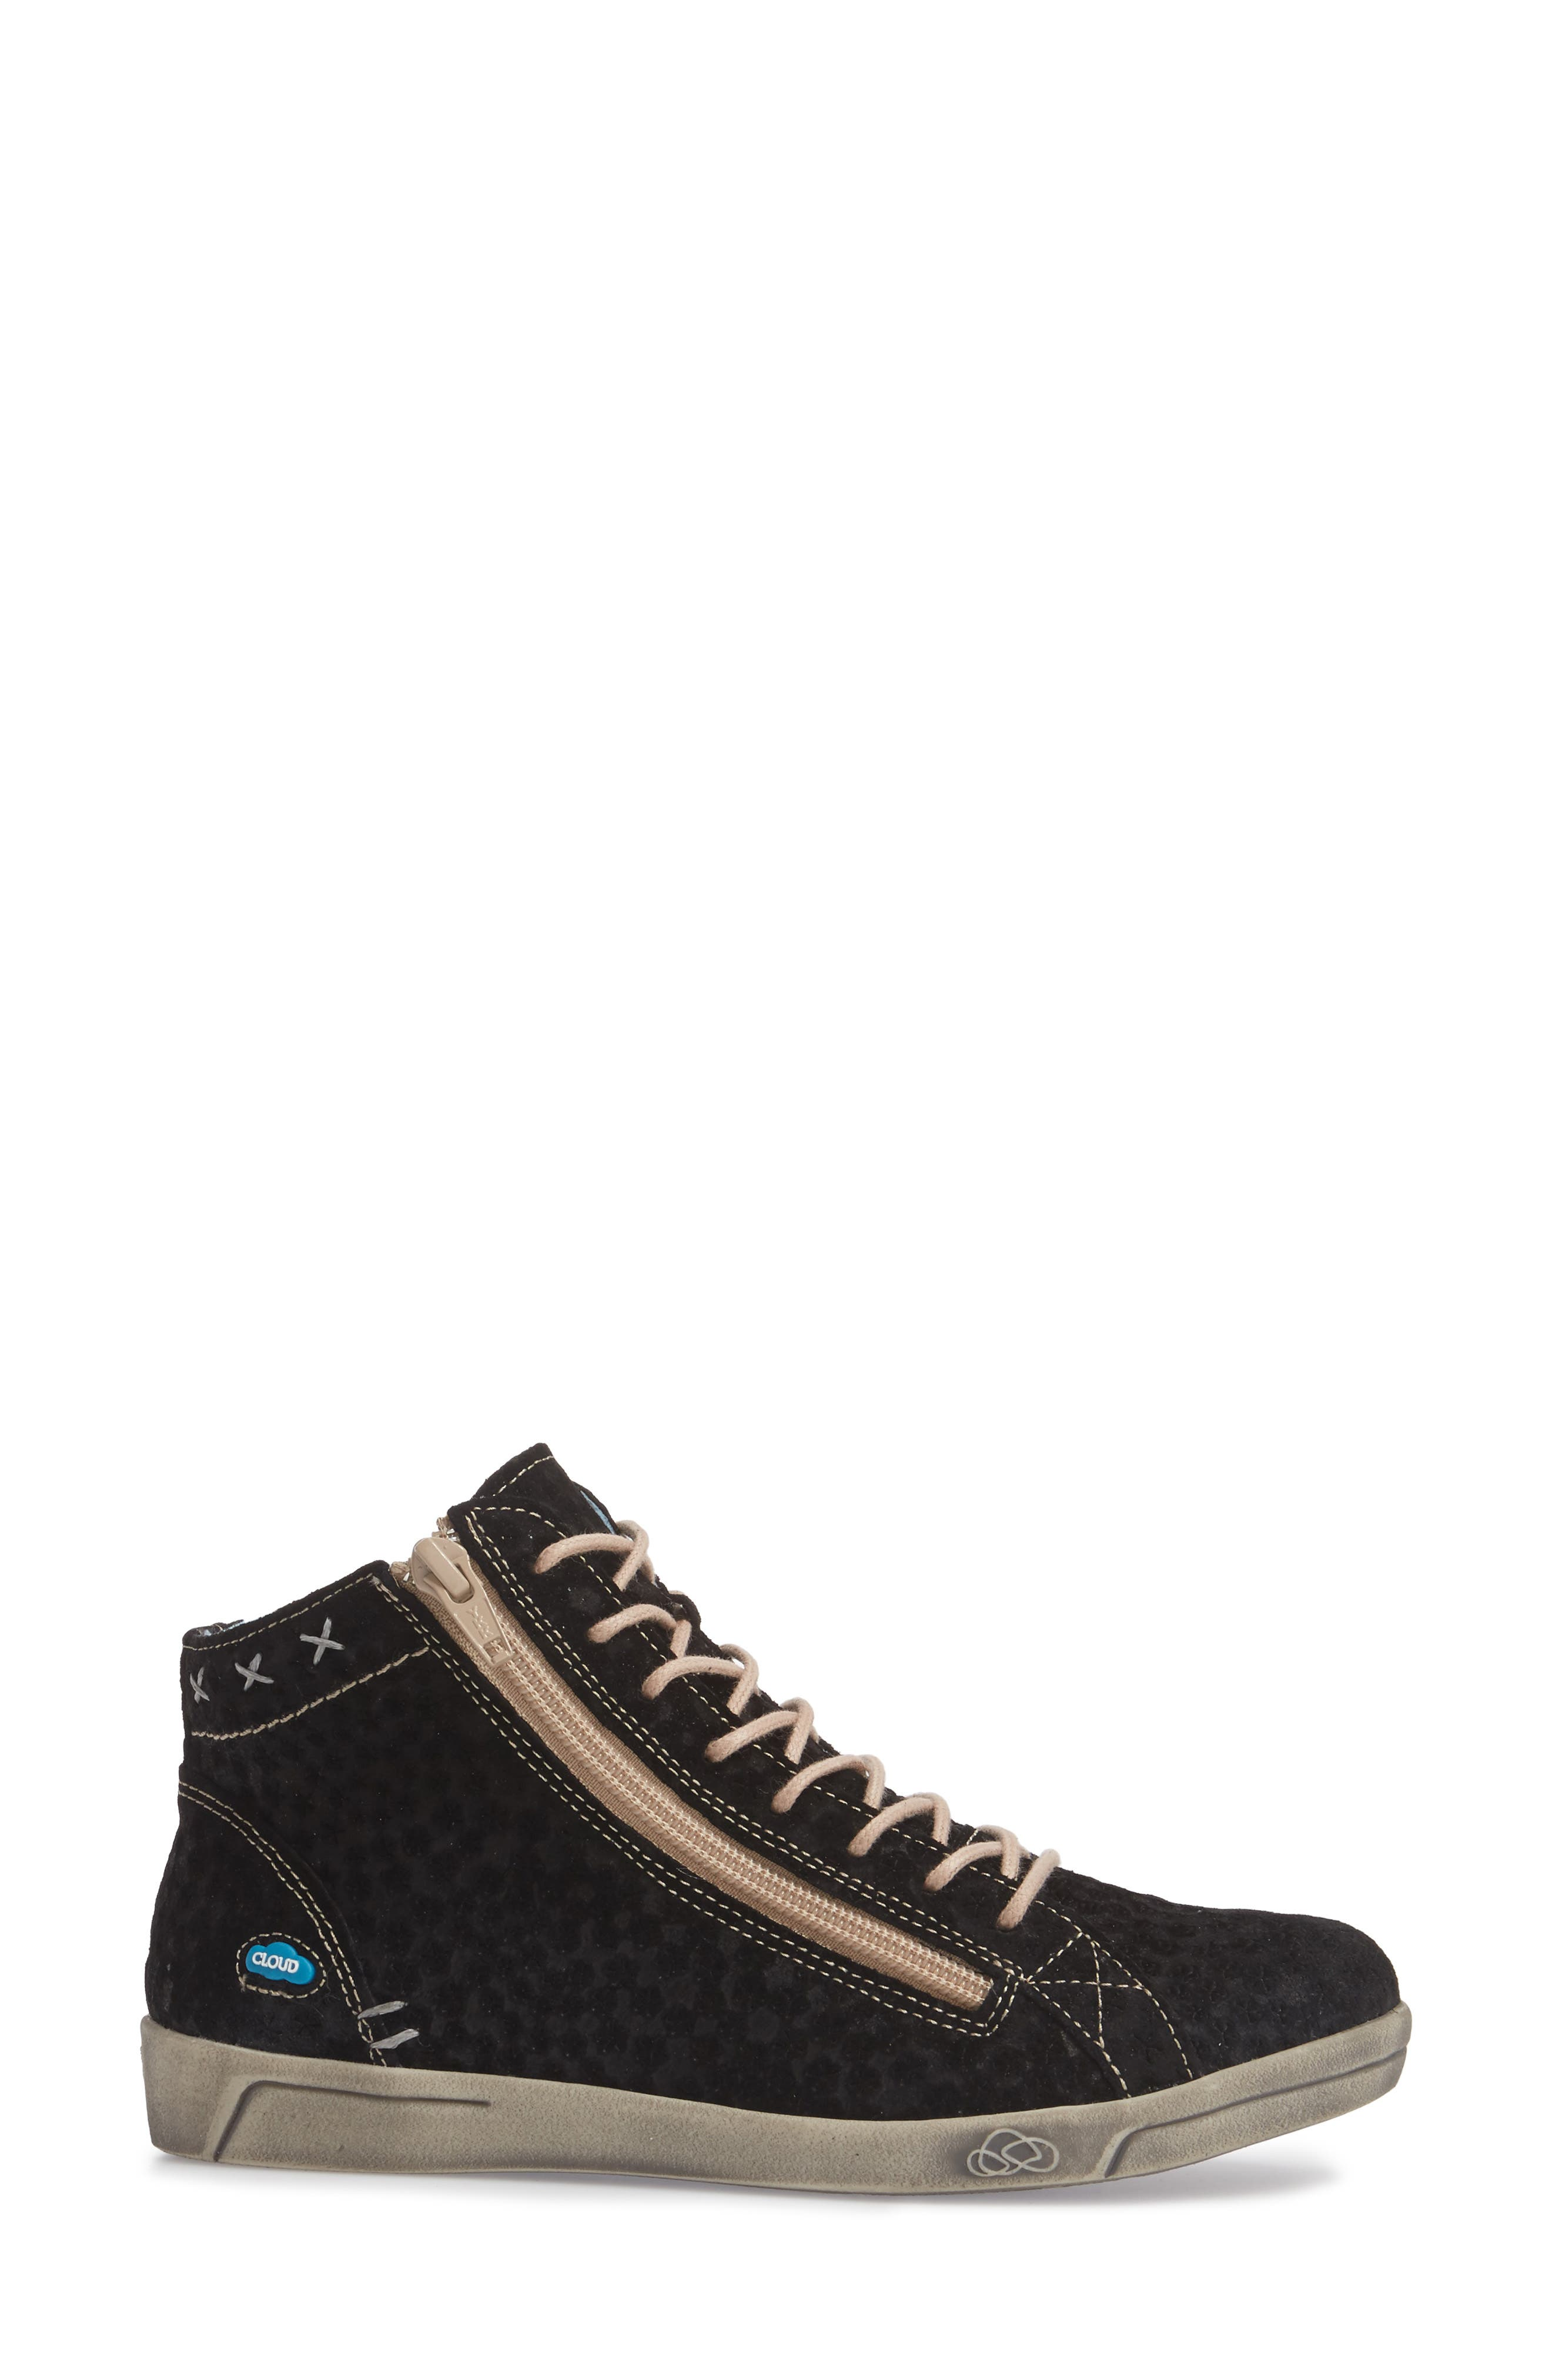 Aika Star Perforated High Top Sneaker,                             Alternate thumbnail 3, color,                             BLACK LEATHER